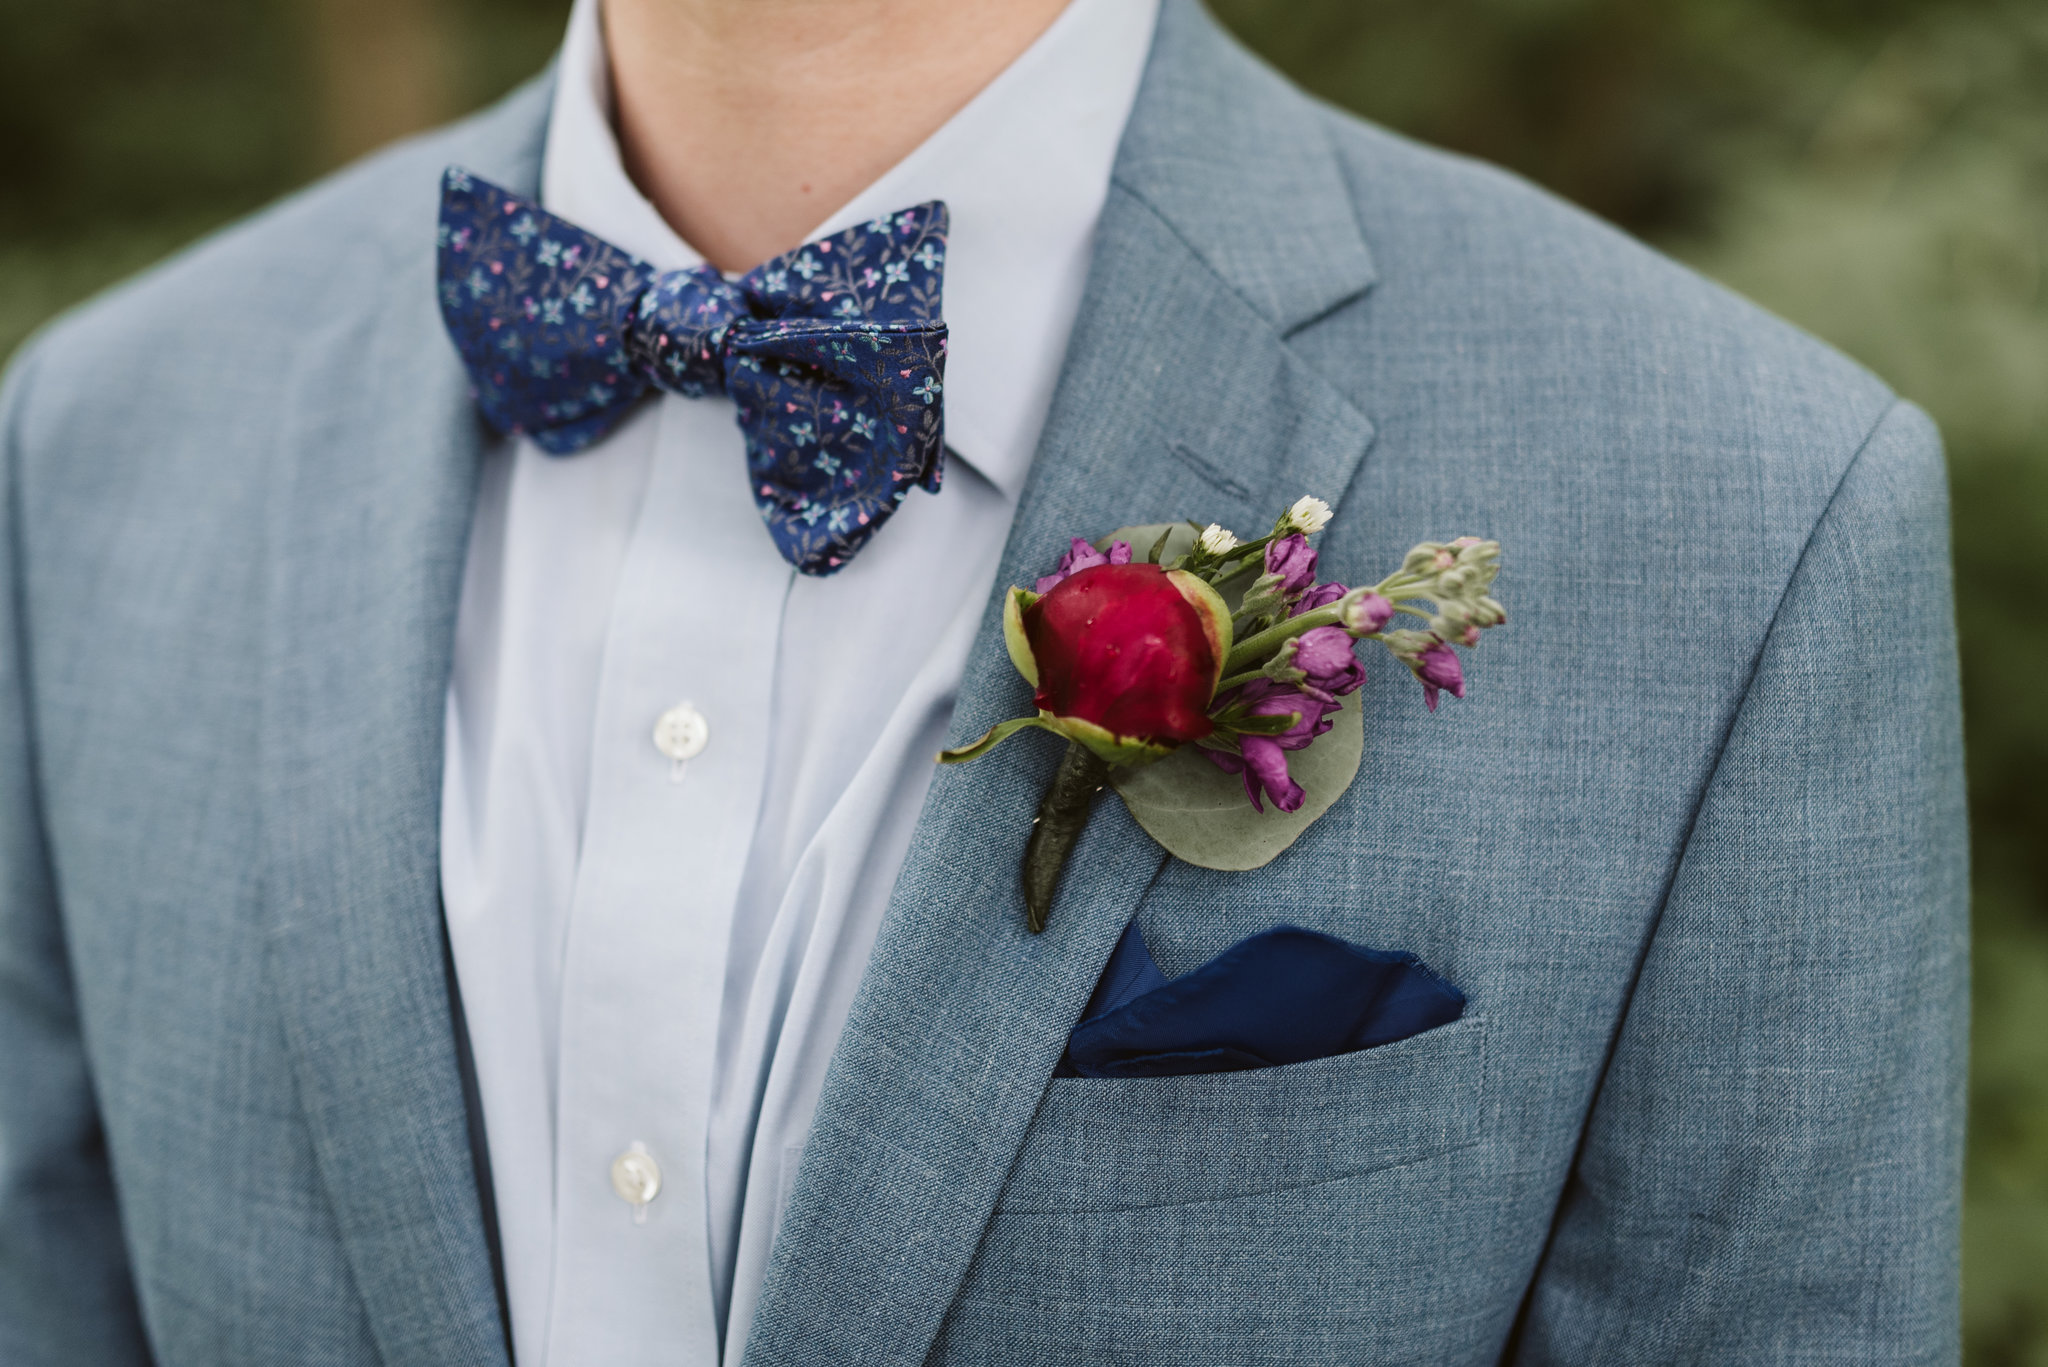 Annapolis, Quaker Wedding, Maryland Wedding Photographer, Intimate, Small Wedding, Vintage, DIY, Blue Suit, Blue Floral Bowtie, Closeup of Boutonniere